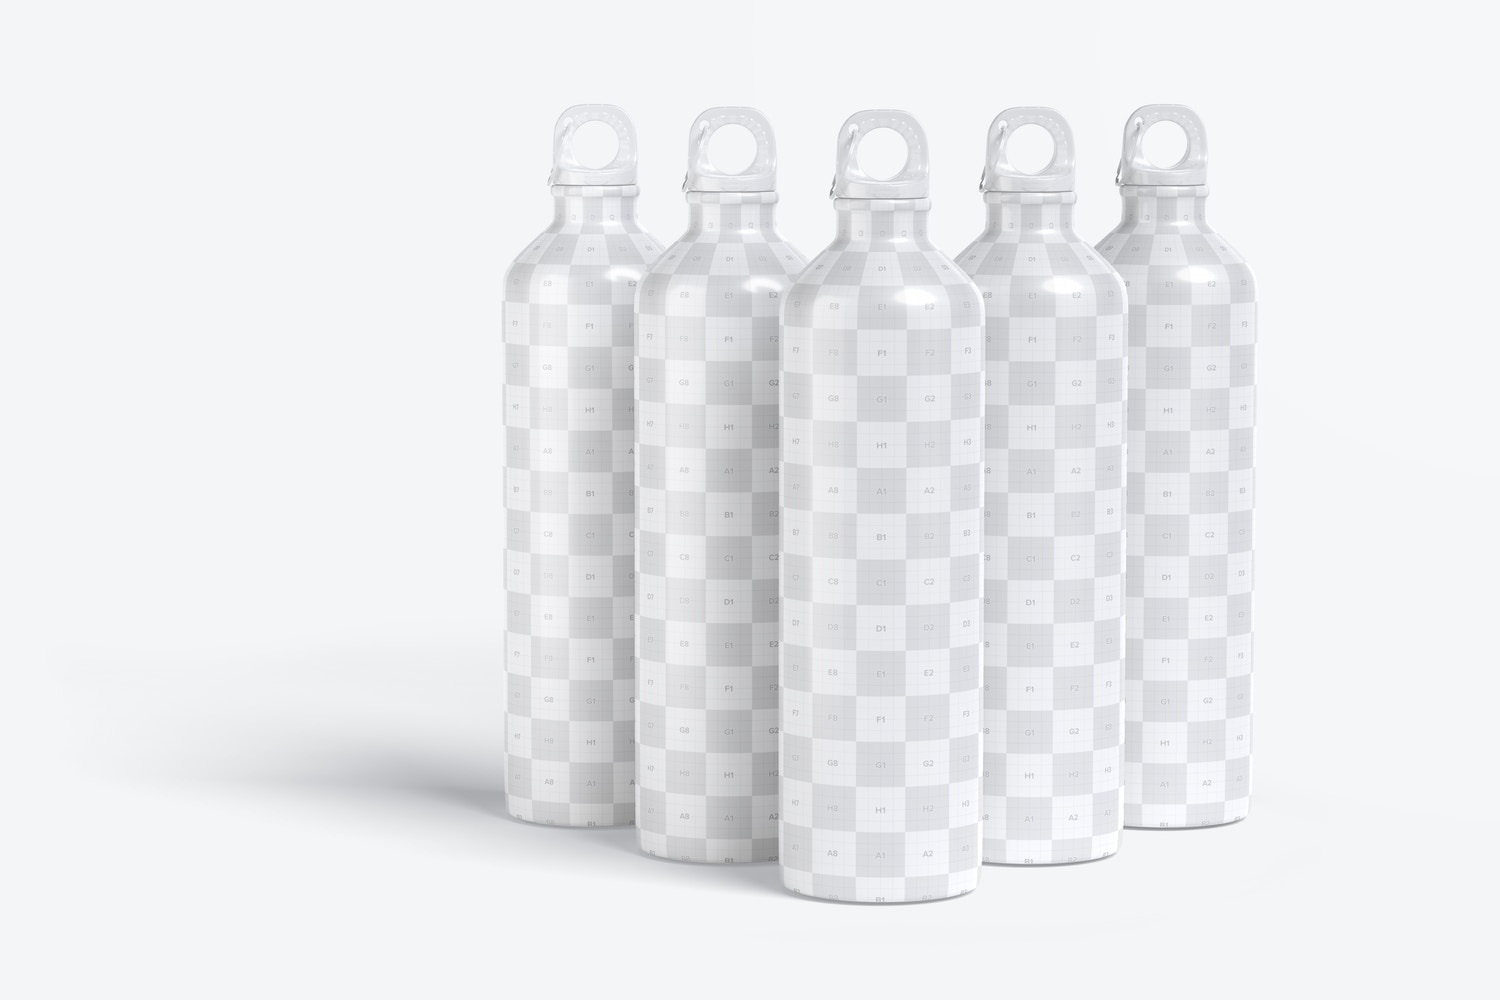 Upgrade your design with the interplay of light and shadow so that the bottles stand out and gain depth in the scene.